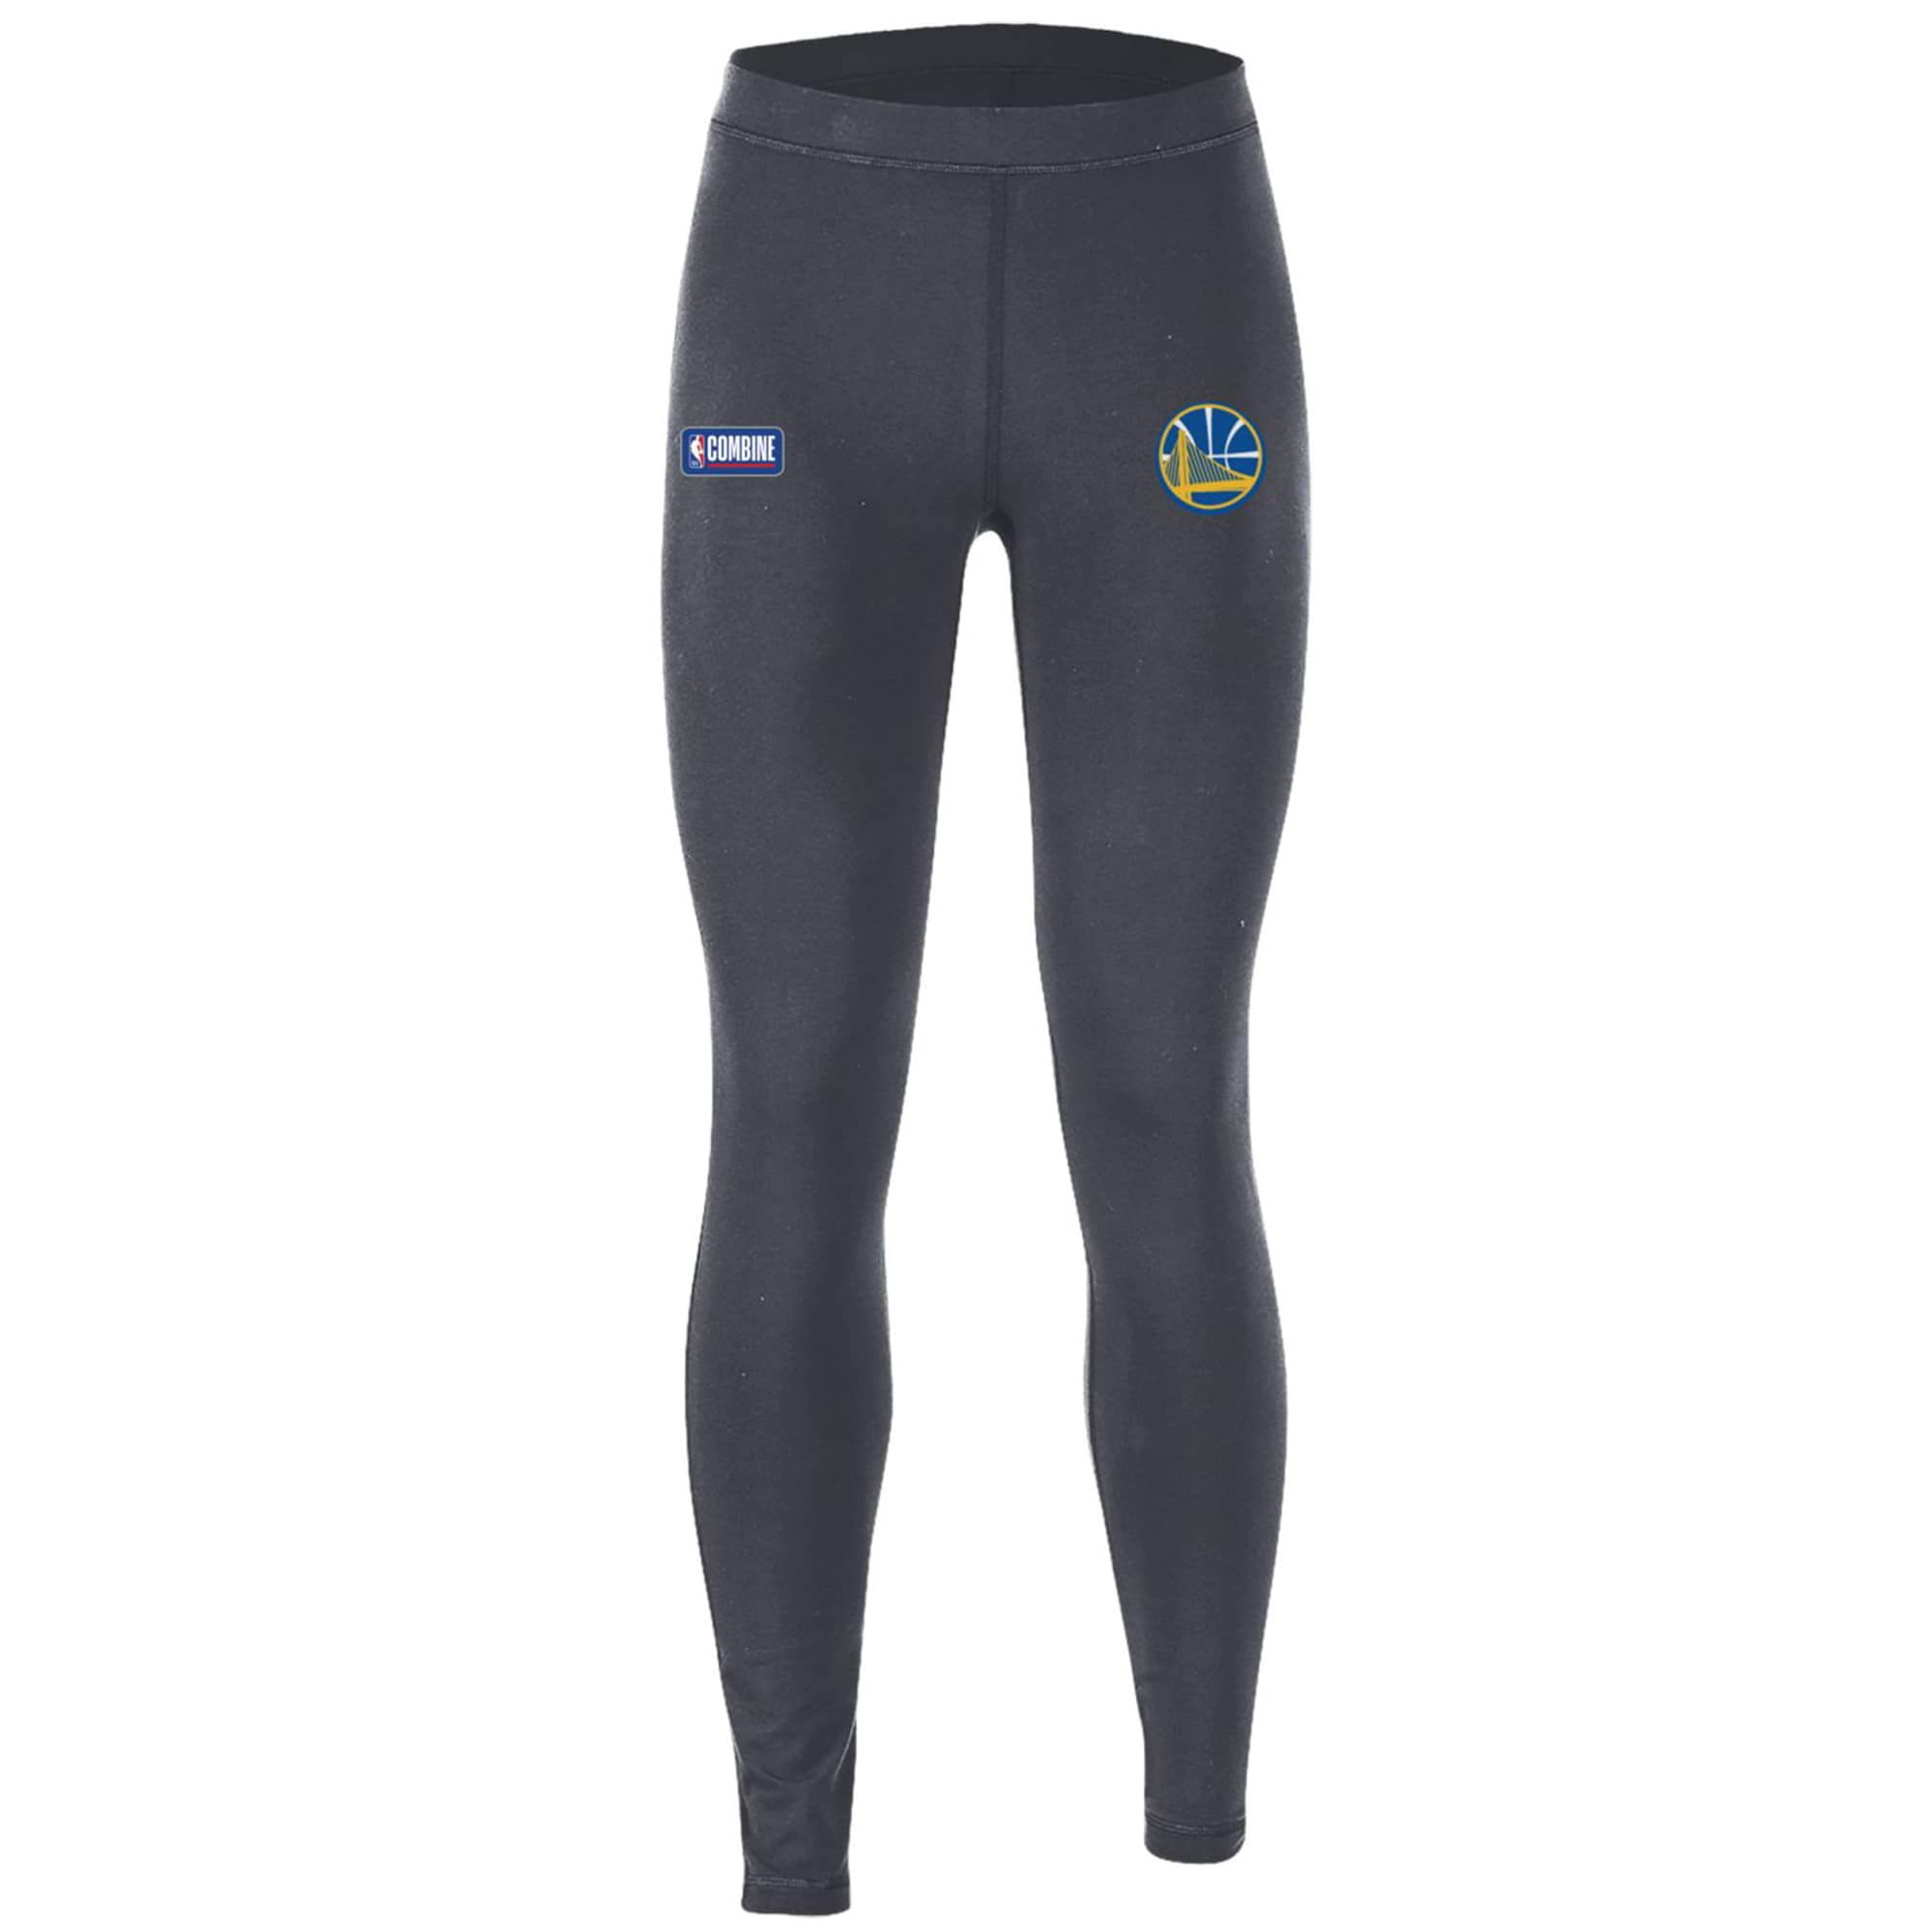 Golden State Warriors Under Armour Women's Combine Authentic Favorites Performance Leggings - Heathered Charcoal